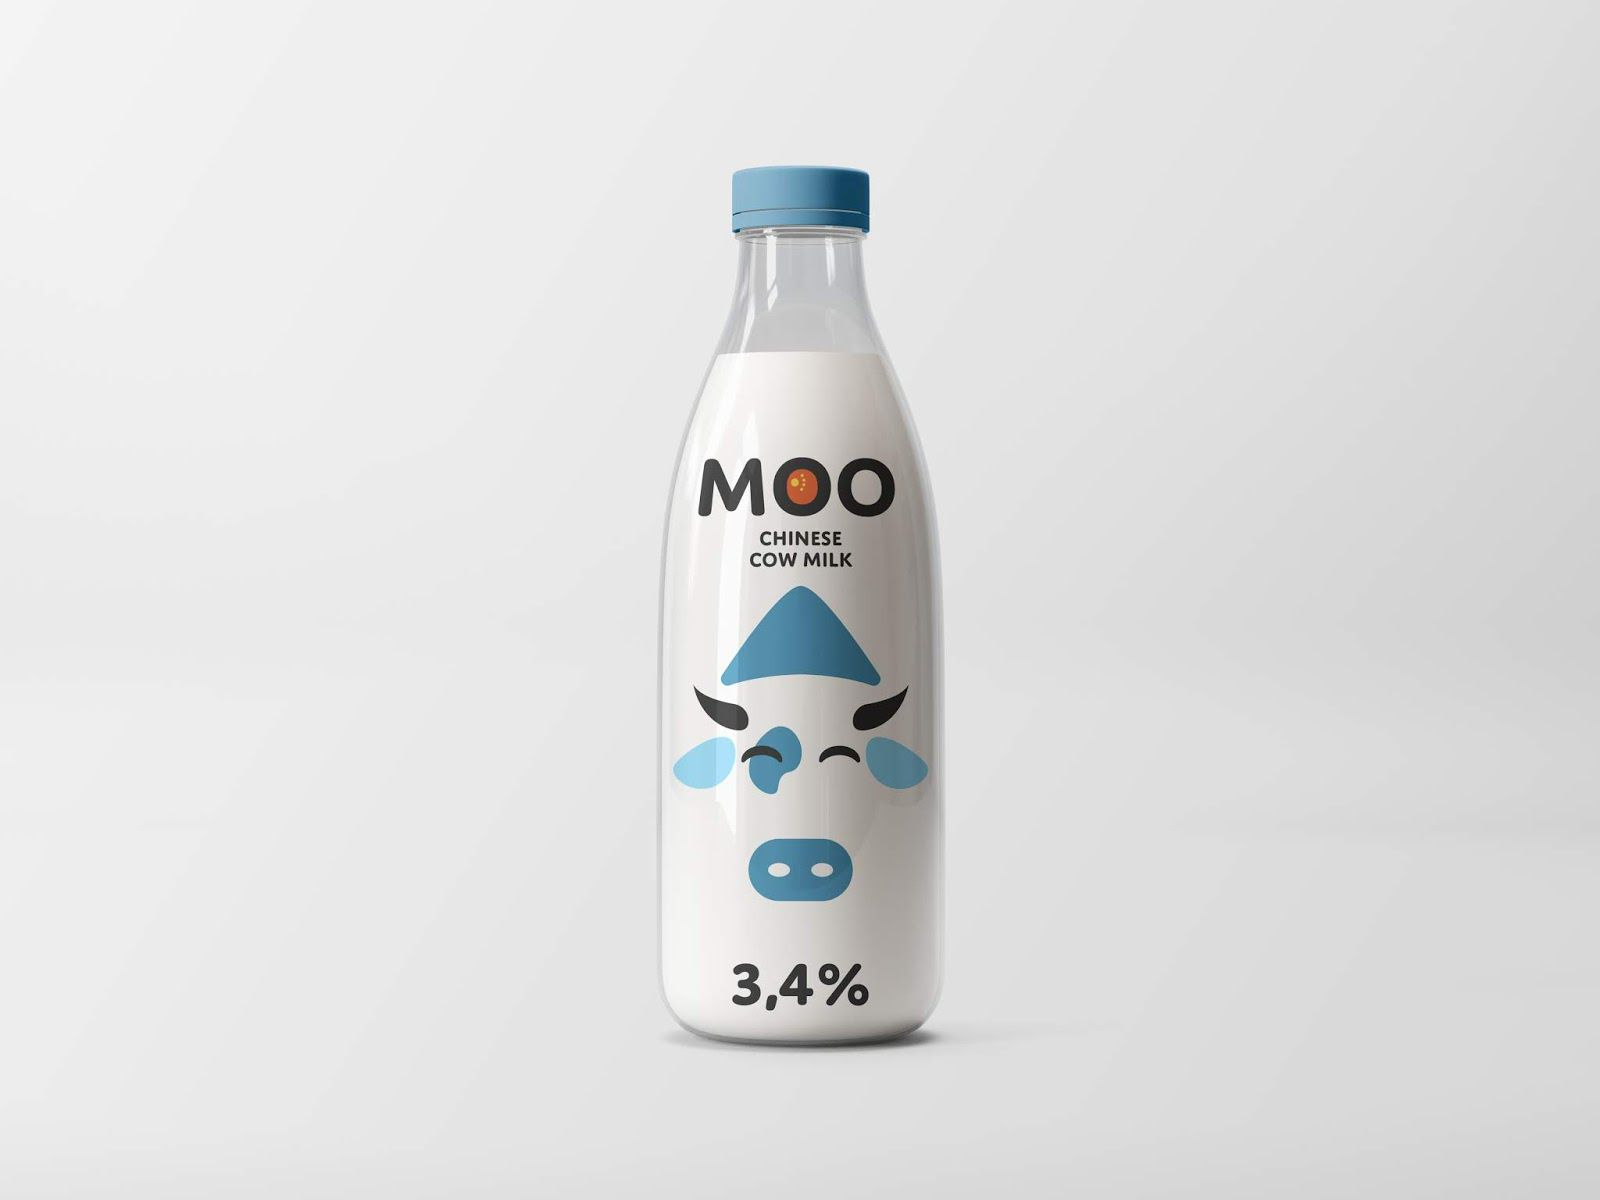 MOO (lait) I Design (projet étudiant) : Dmitry Moystsrapishvili (HSE Art and Design School), Russie (avril 2020)